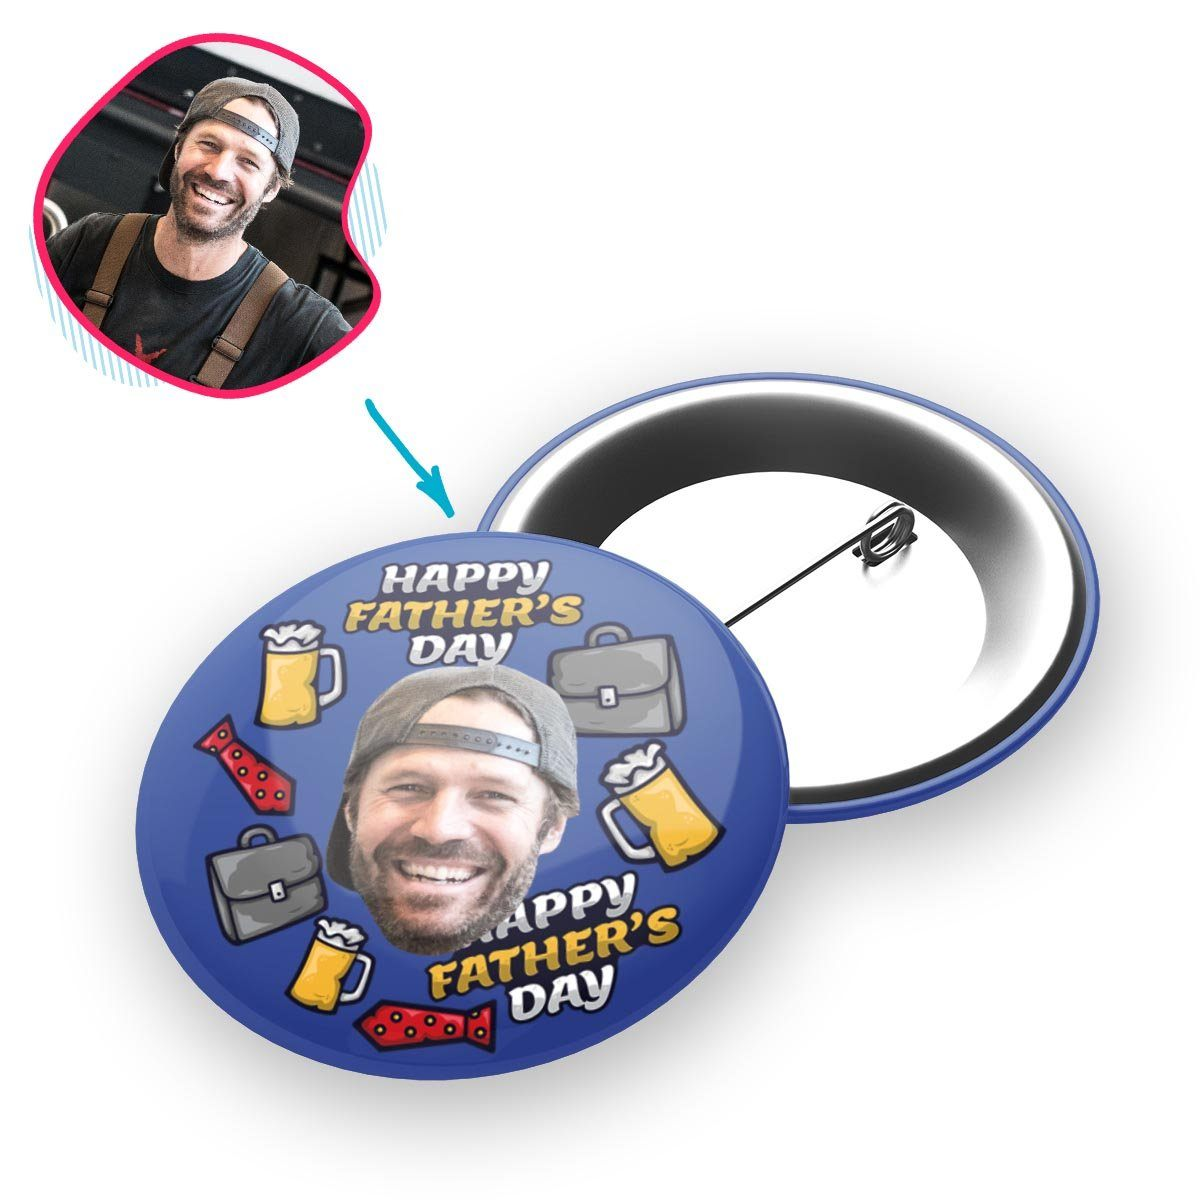 Darkblue Fathers Day personalized pin with photo of face printed on it